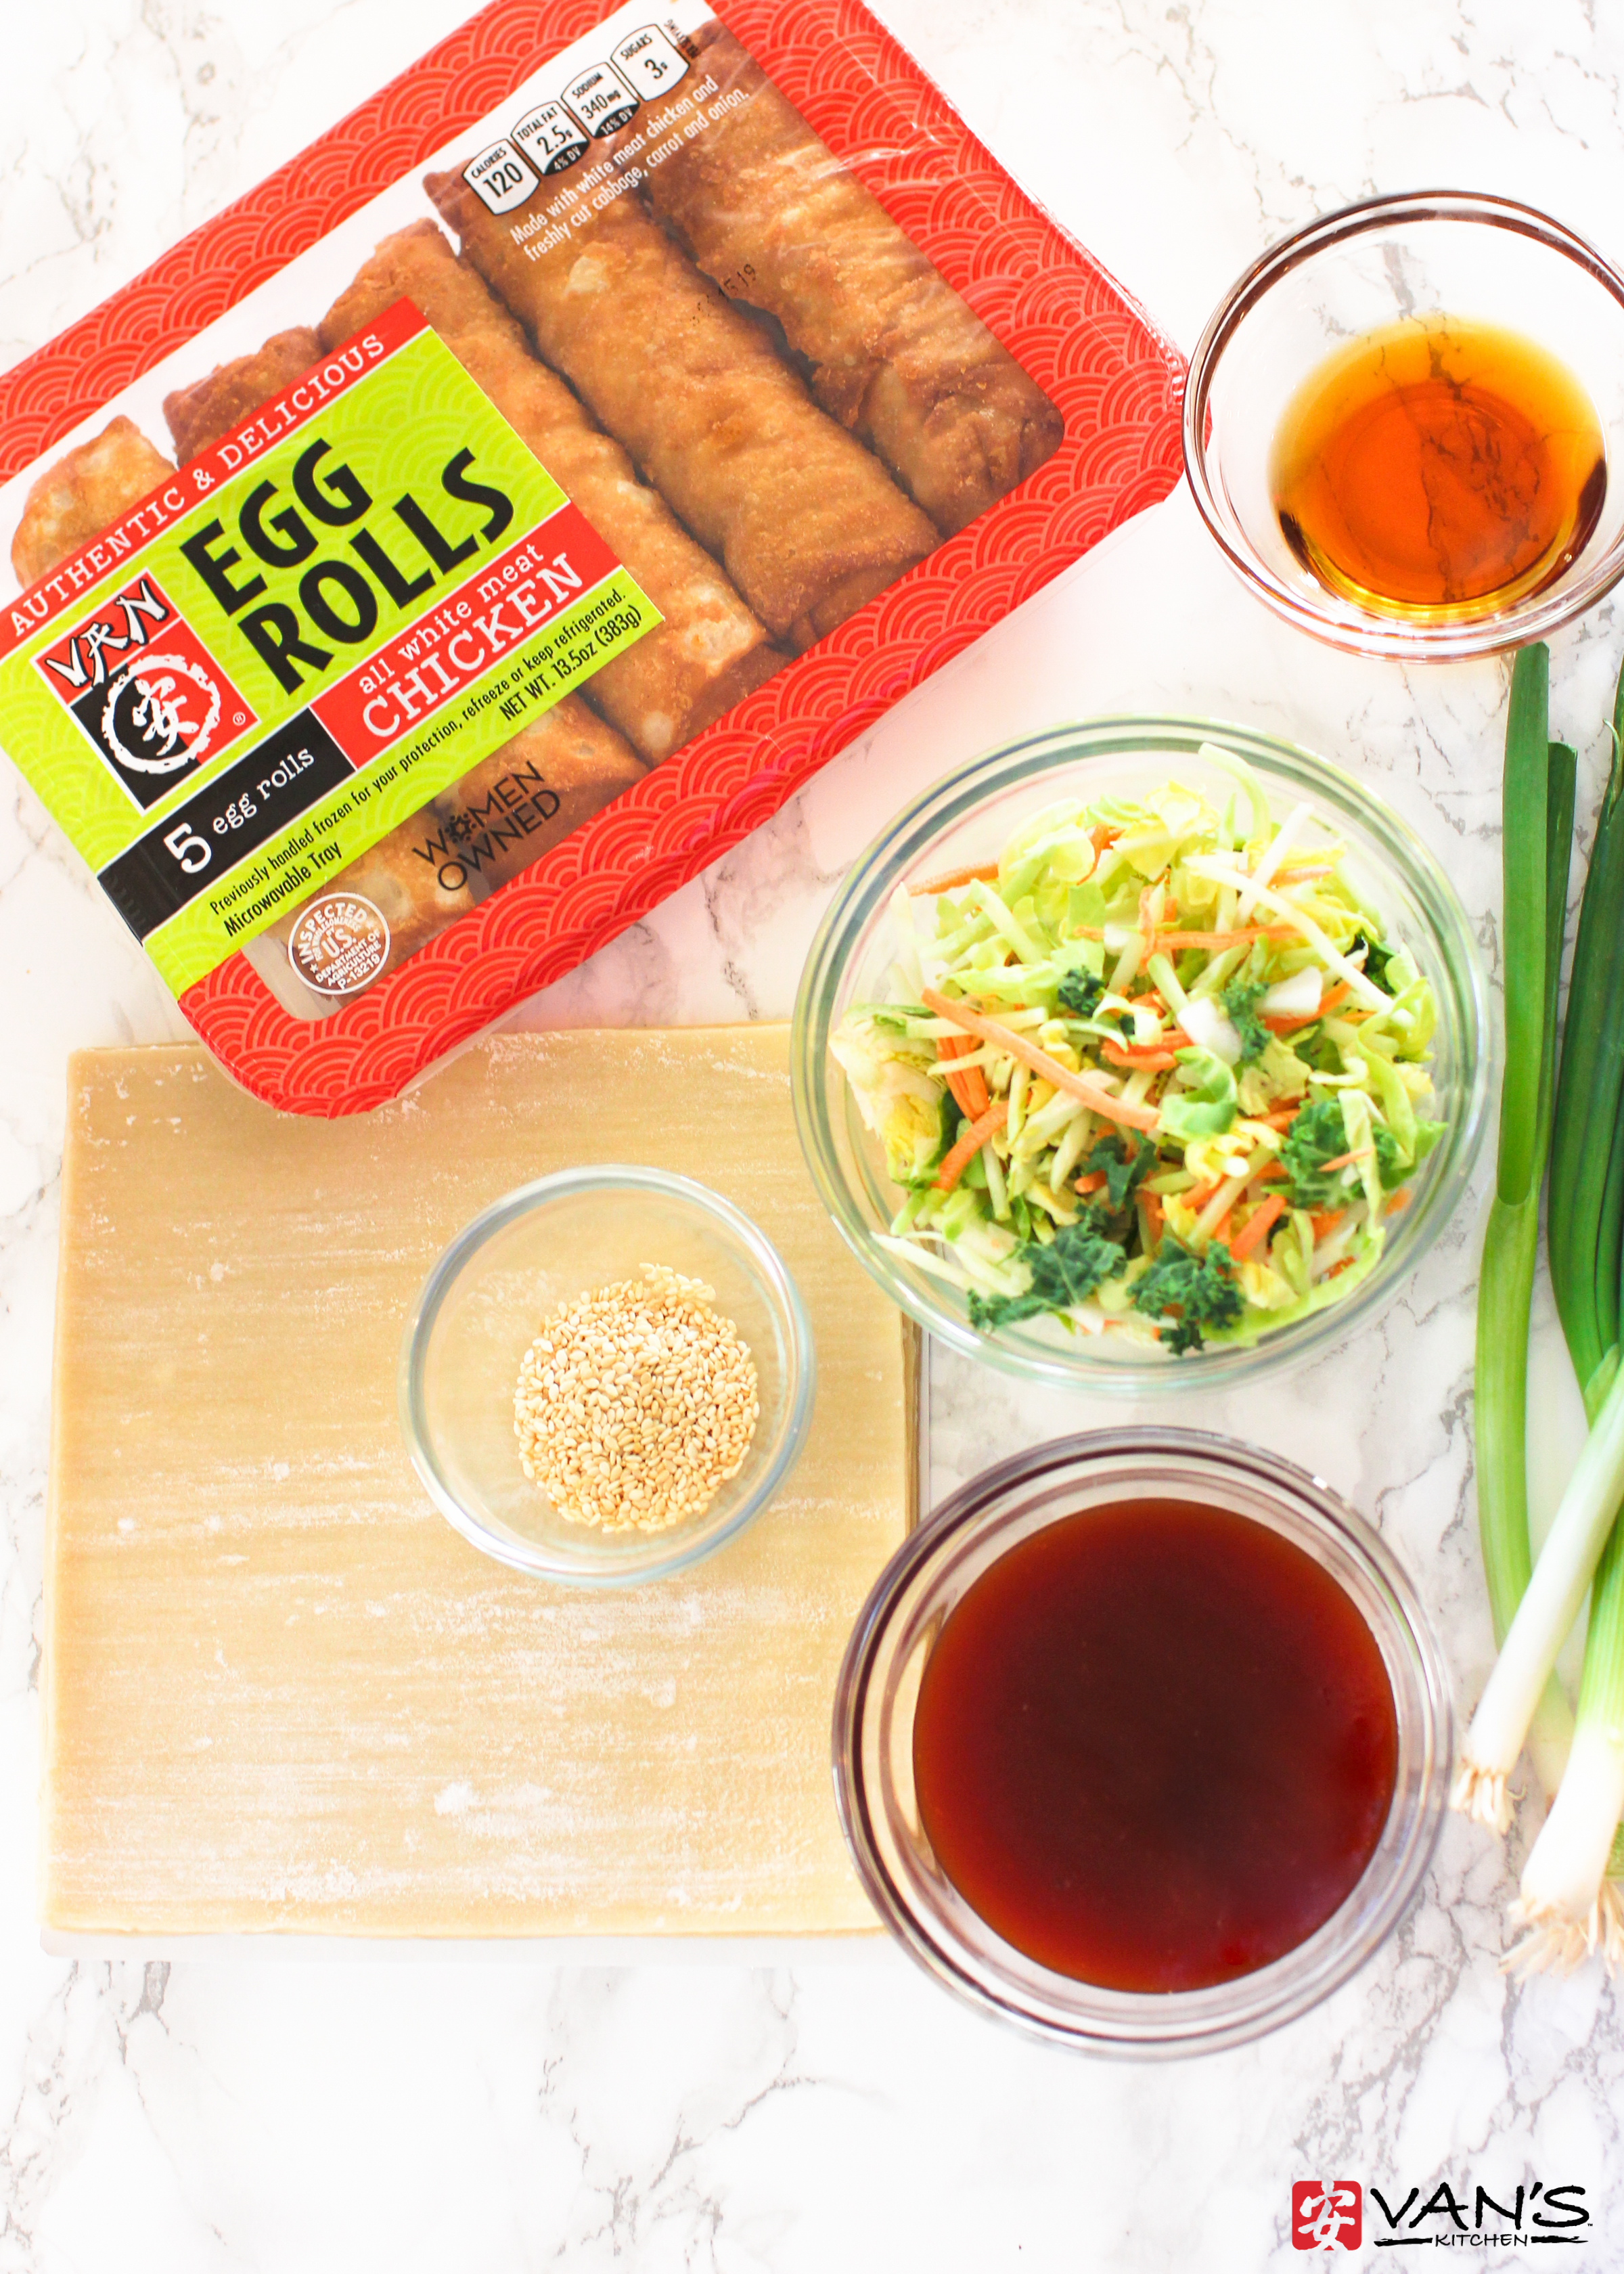 Make thin, crispy chicken egg roll pizza in only 10 minutes! It's a healthy and flavorful recipe that's perfect for weeknights or parties.